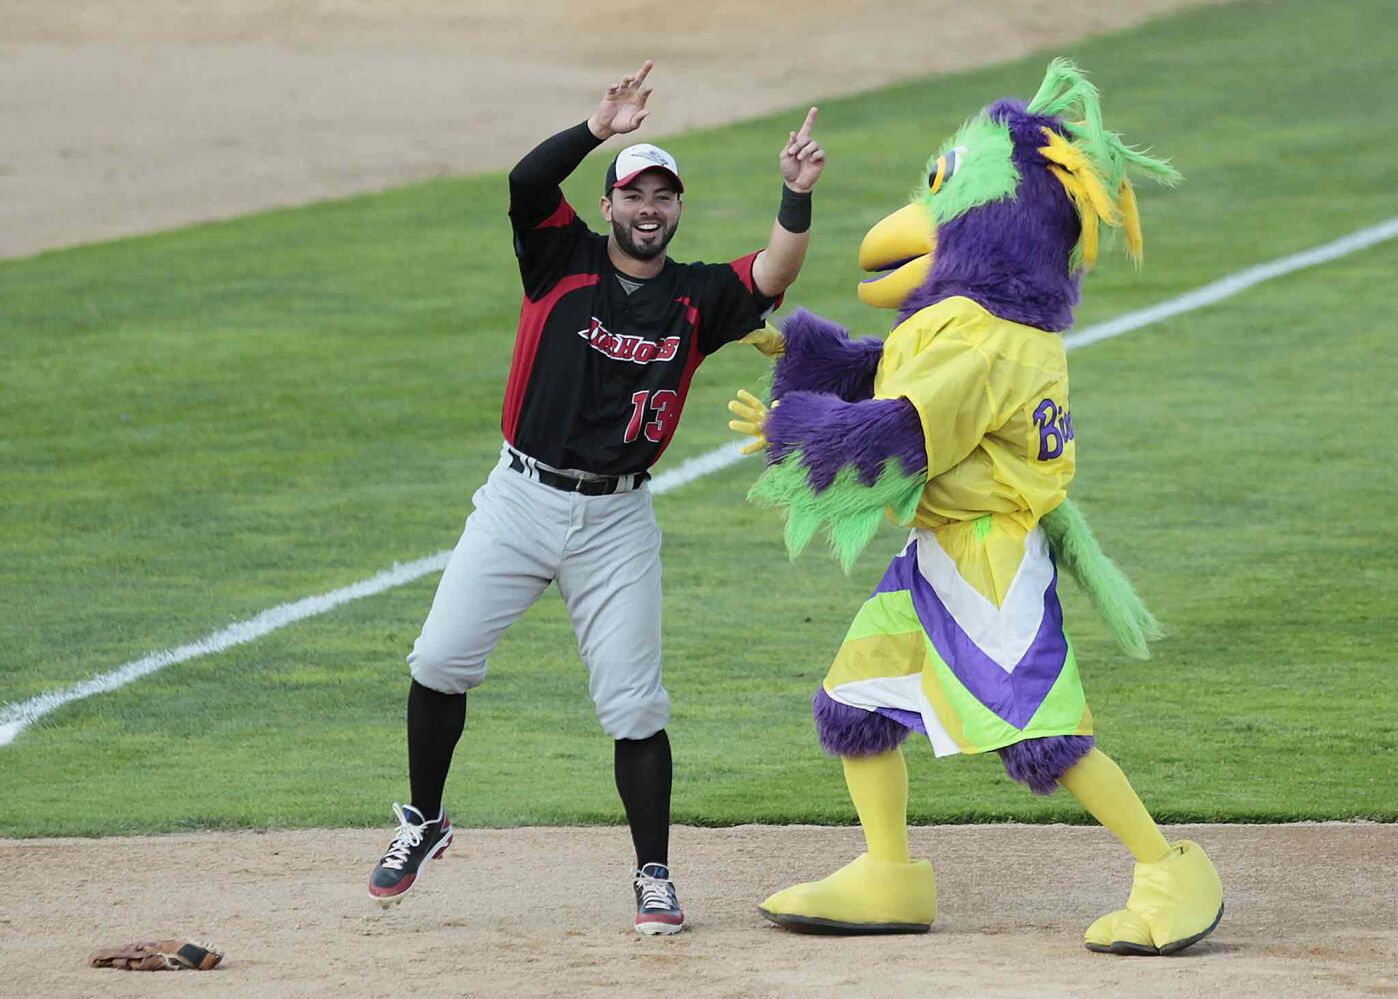 Grand Prairie Air Hogs Adel Nieves jokes around with a mascot during Tuesday's All-Star game. (John Woods / Winnipeg Free Press)